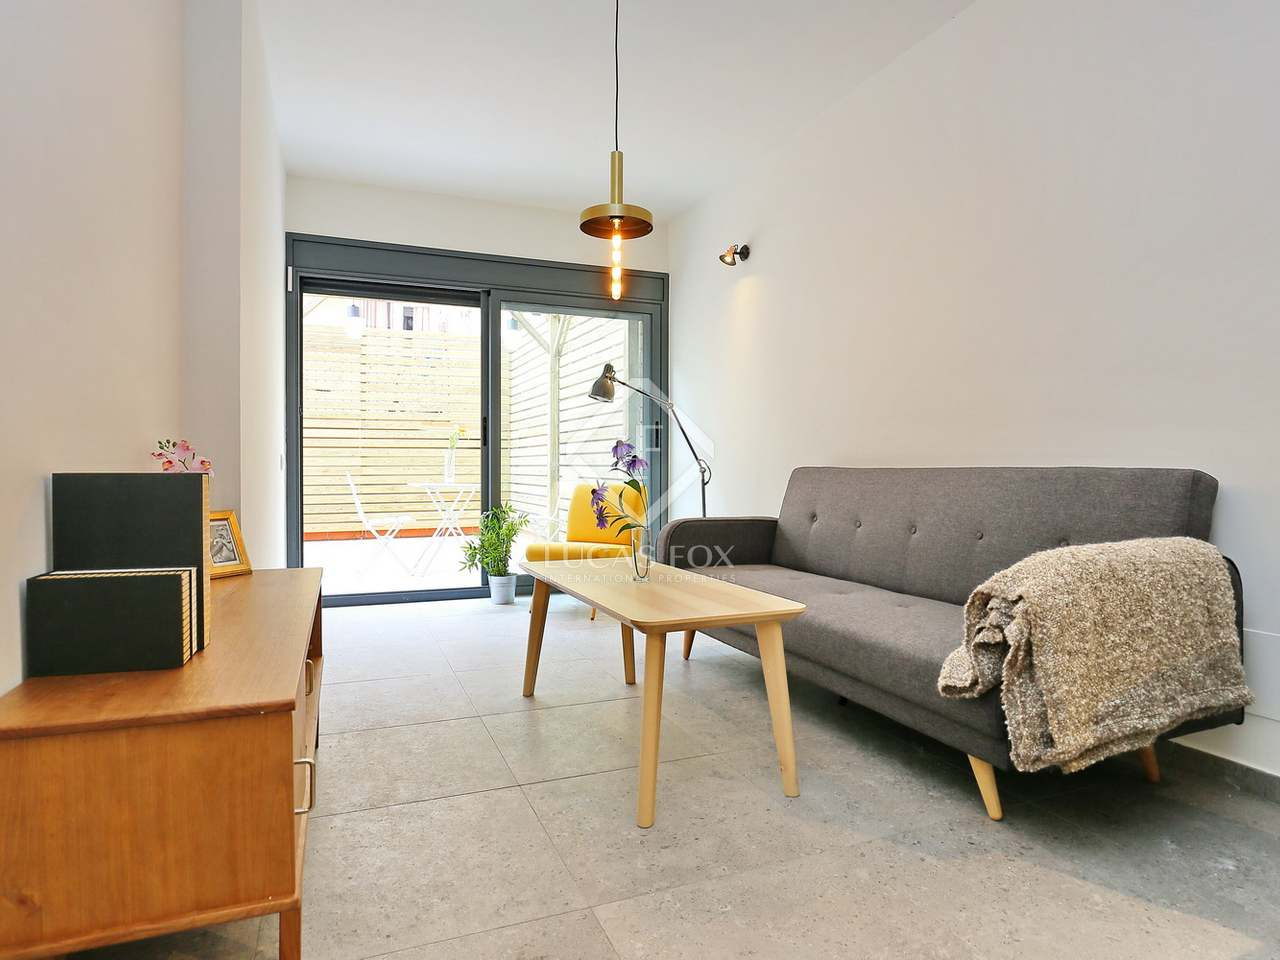 60 M Apartment With 30 M Terrace For Sale In Poble Sec # Muebles Poble Sec